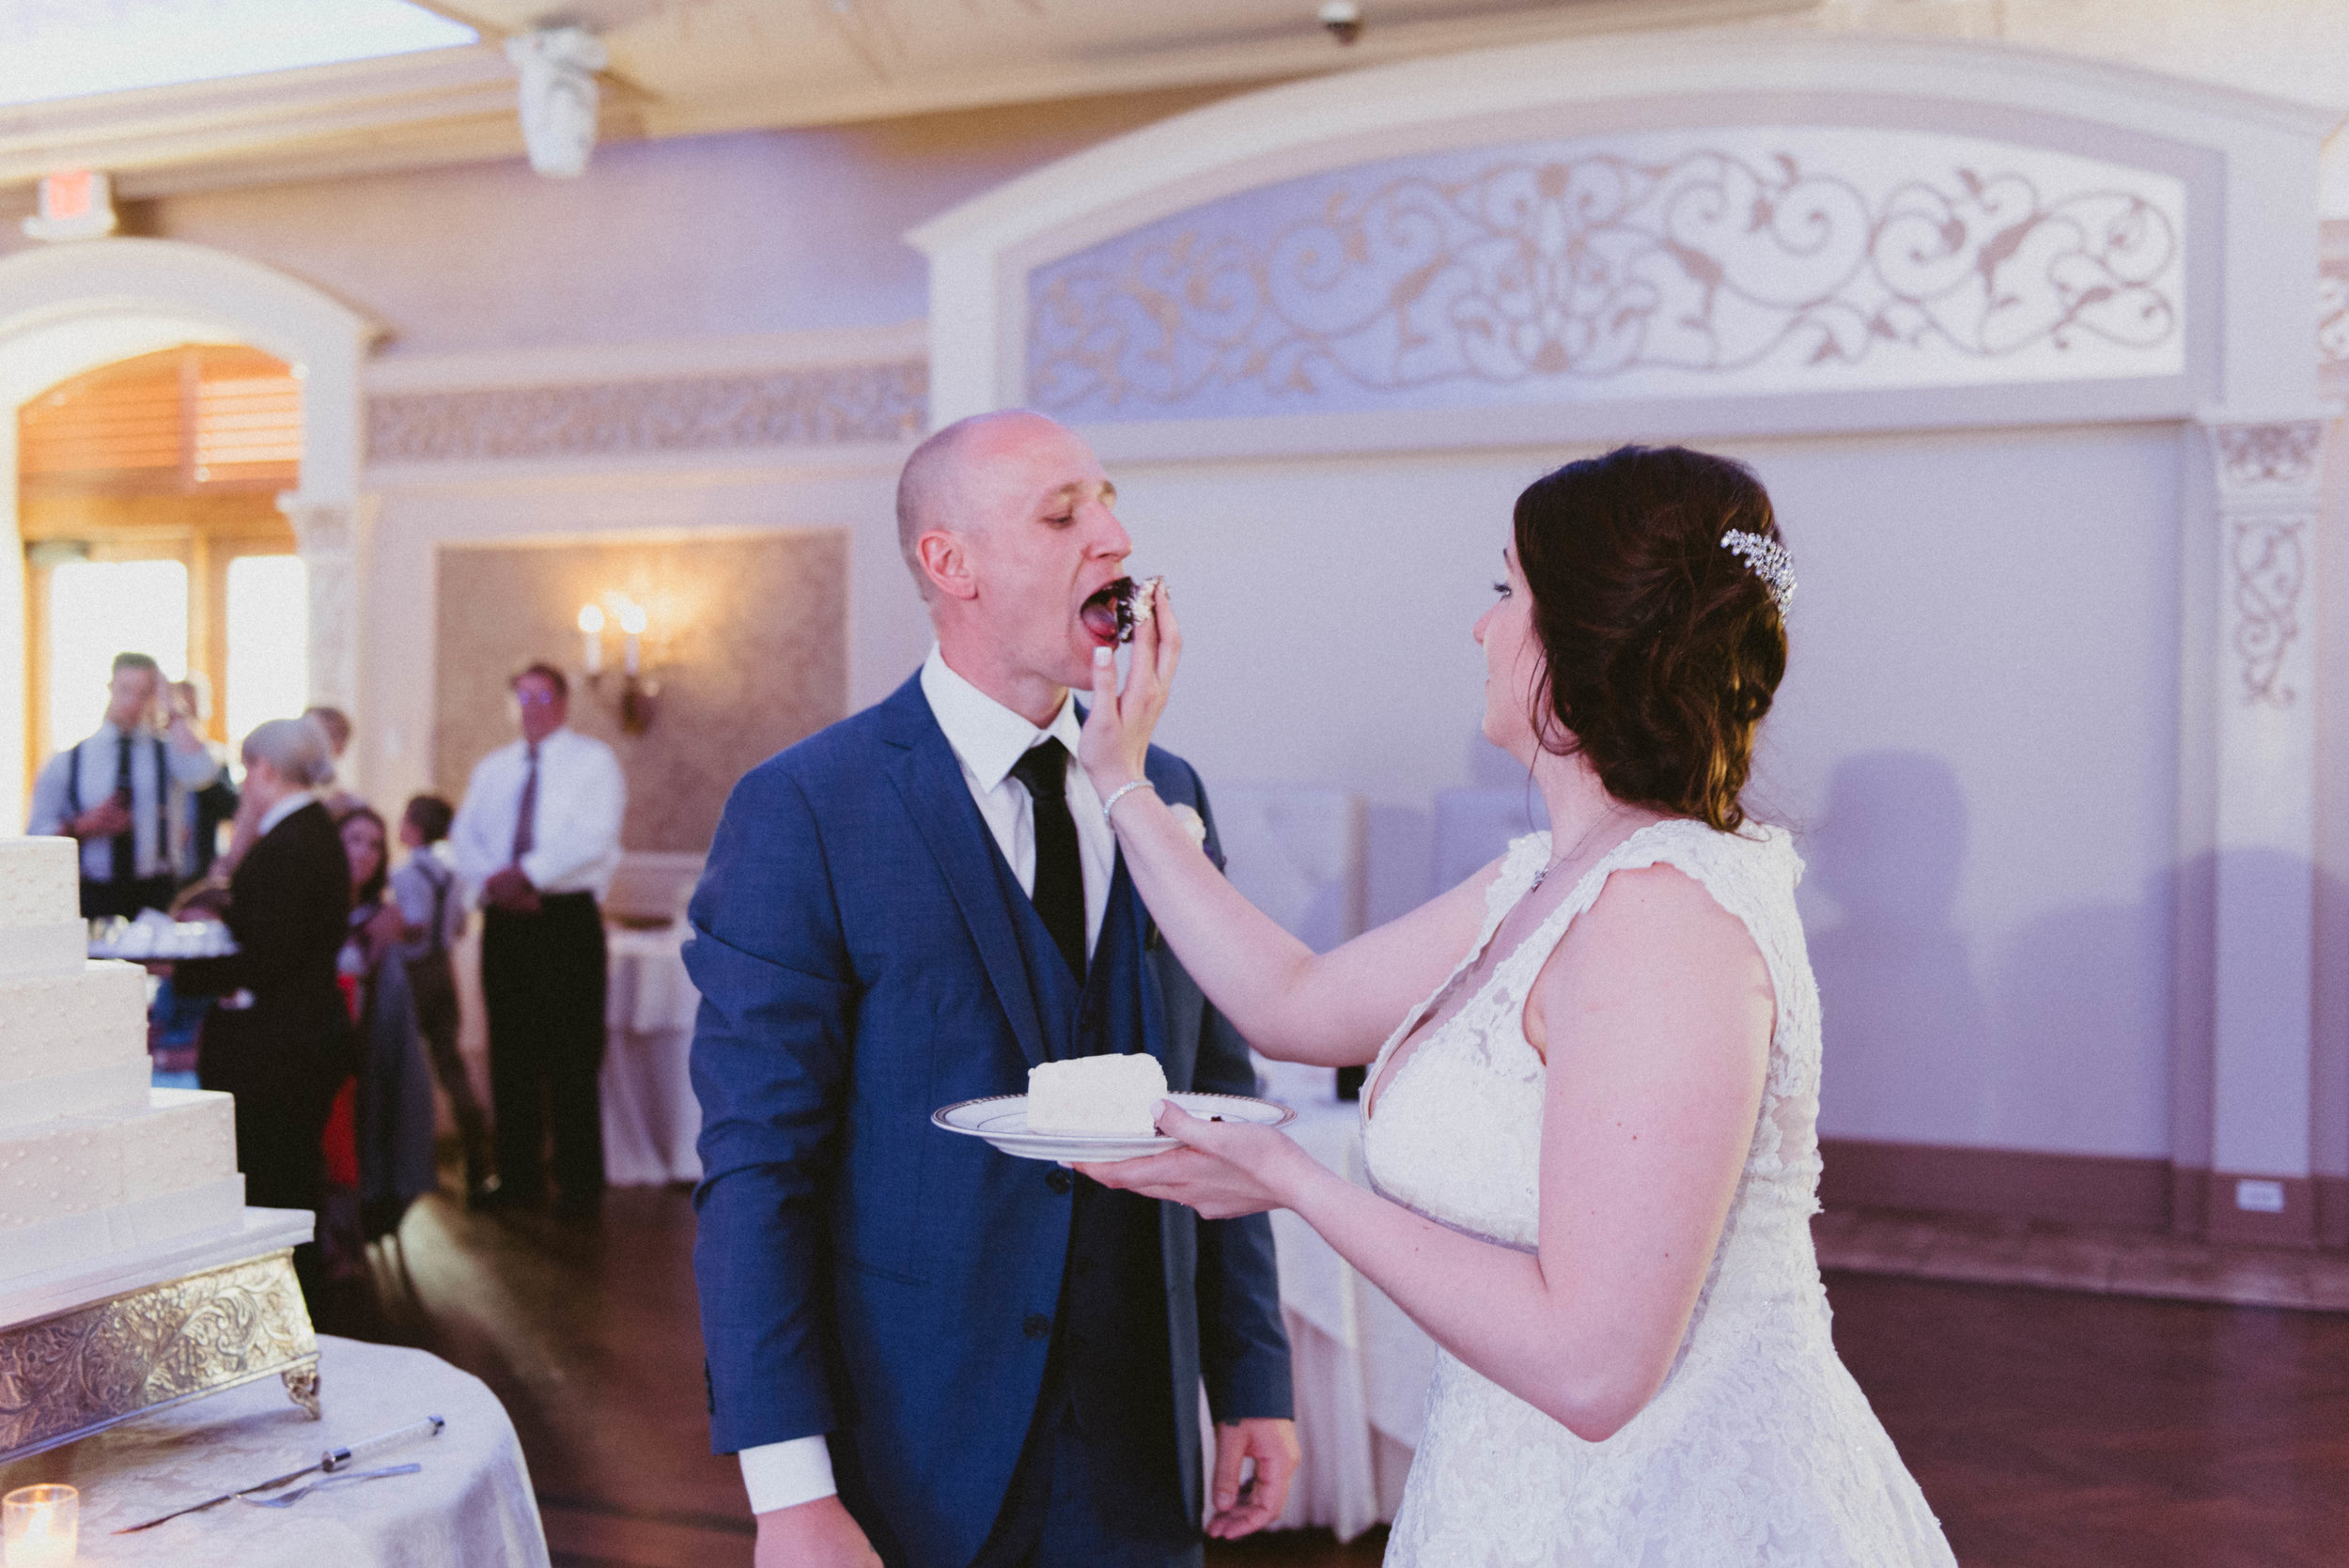 jaq & bobby_cake cutting (5 of 92).jpg